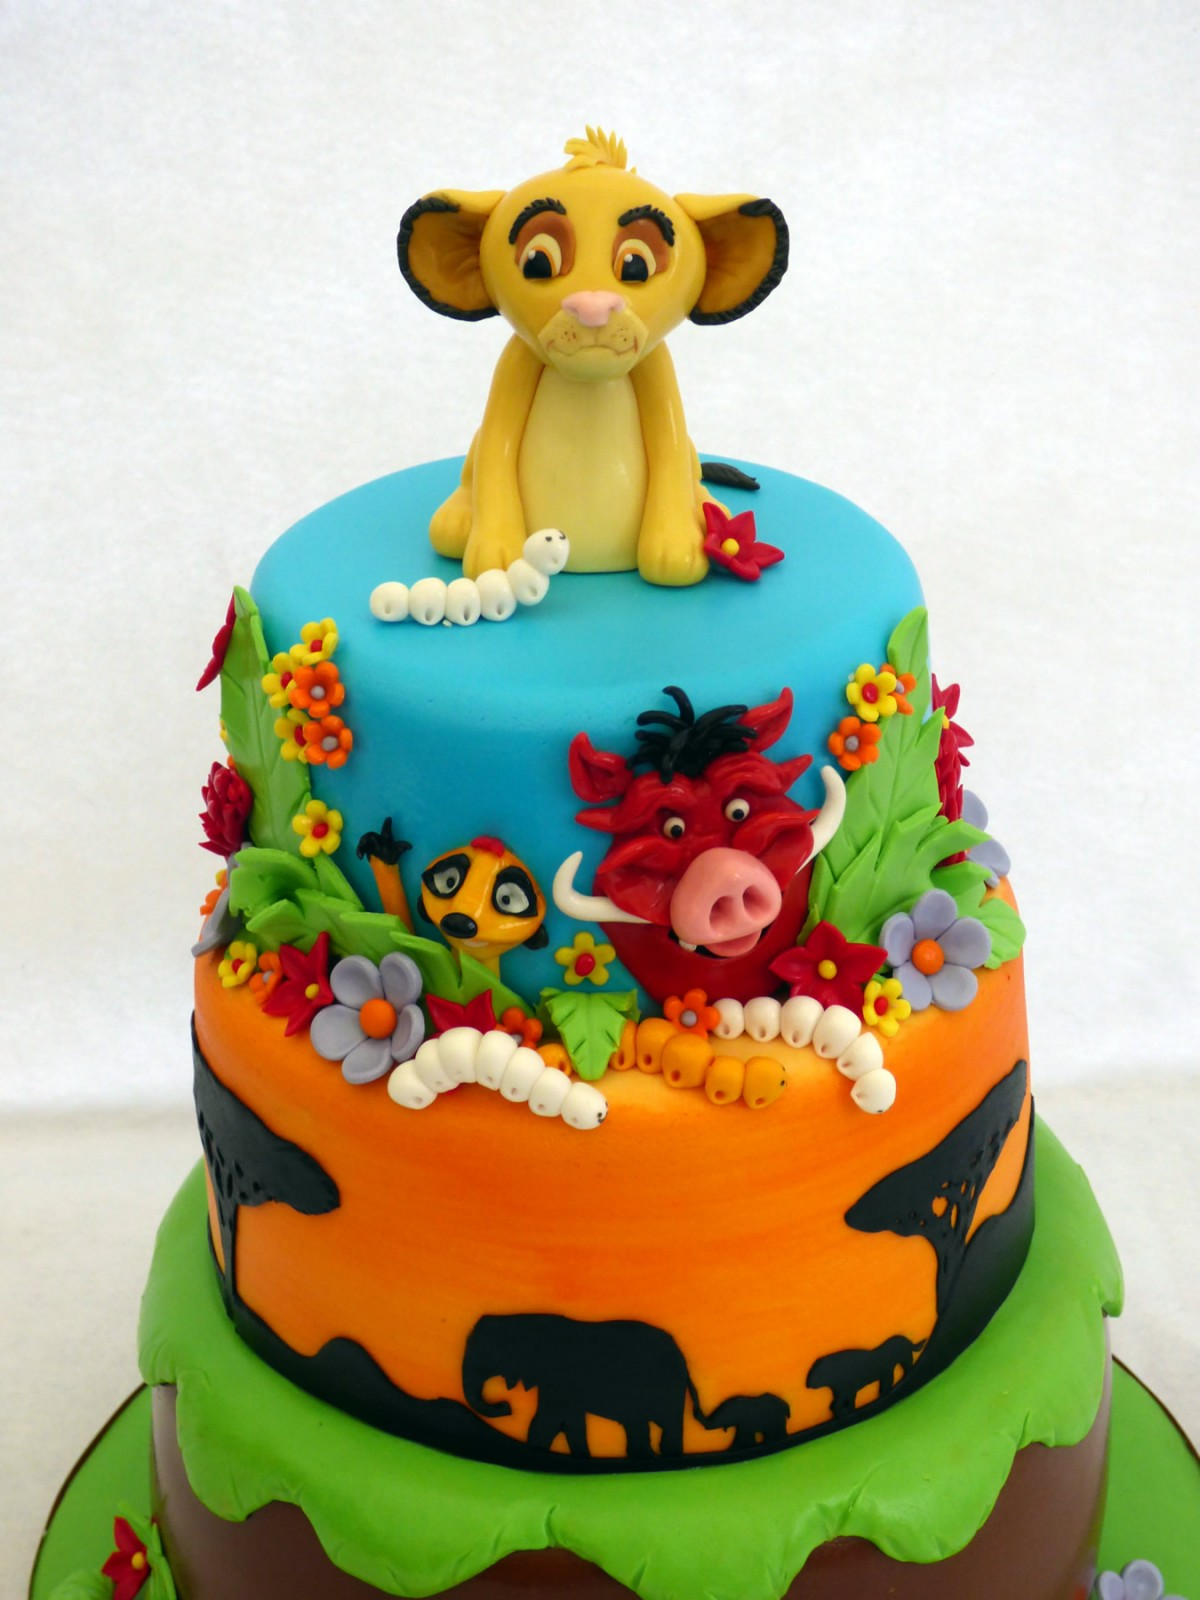 Where Can I Get A Lions Christmas Cake